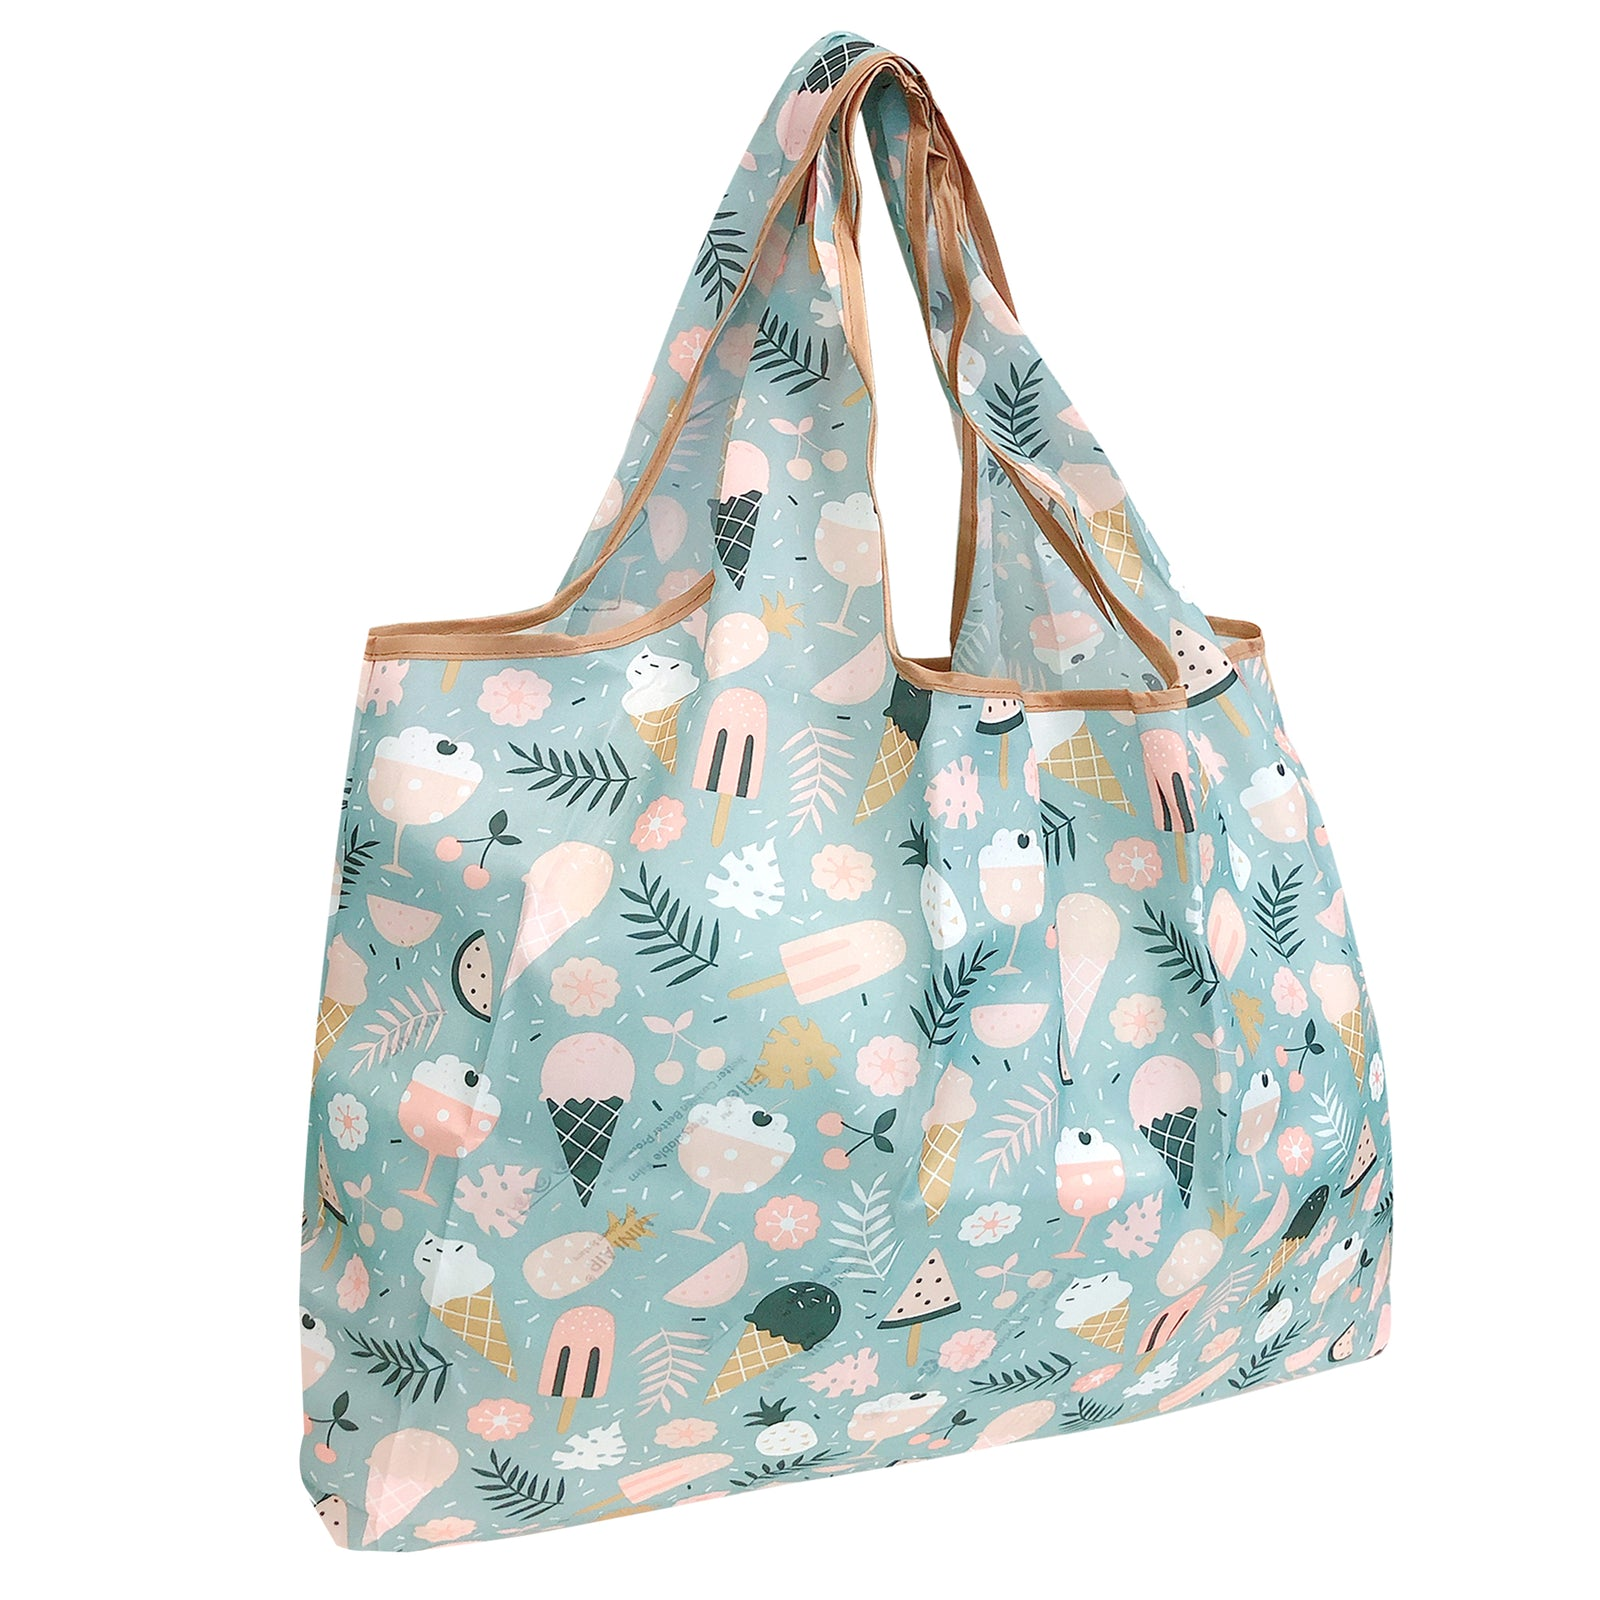 Wrapables Eco-Friendly Large Nylon Reusable Shopping Bag